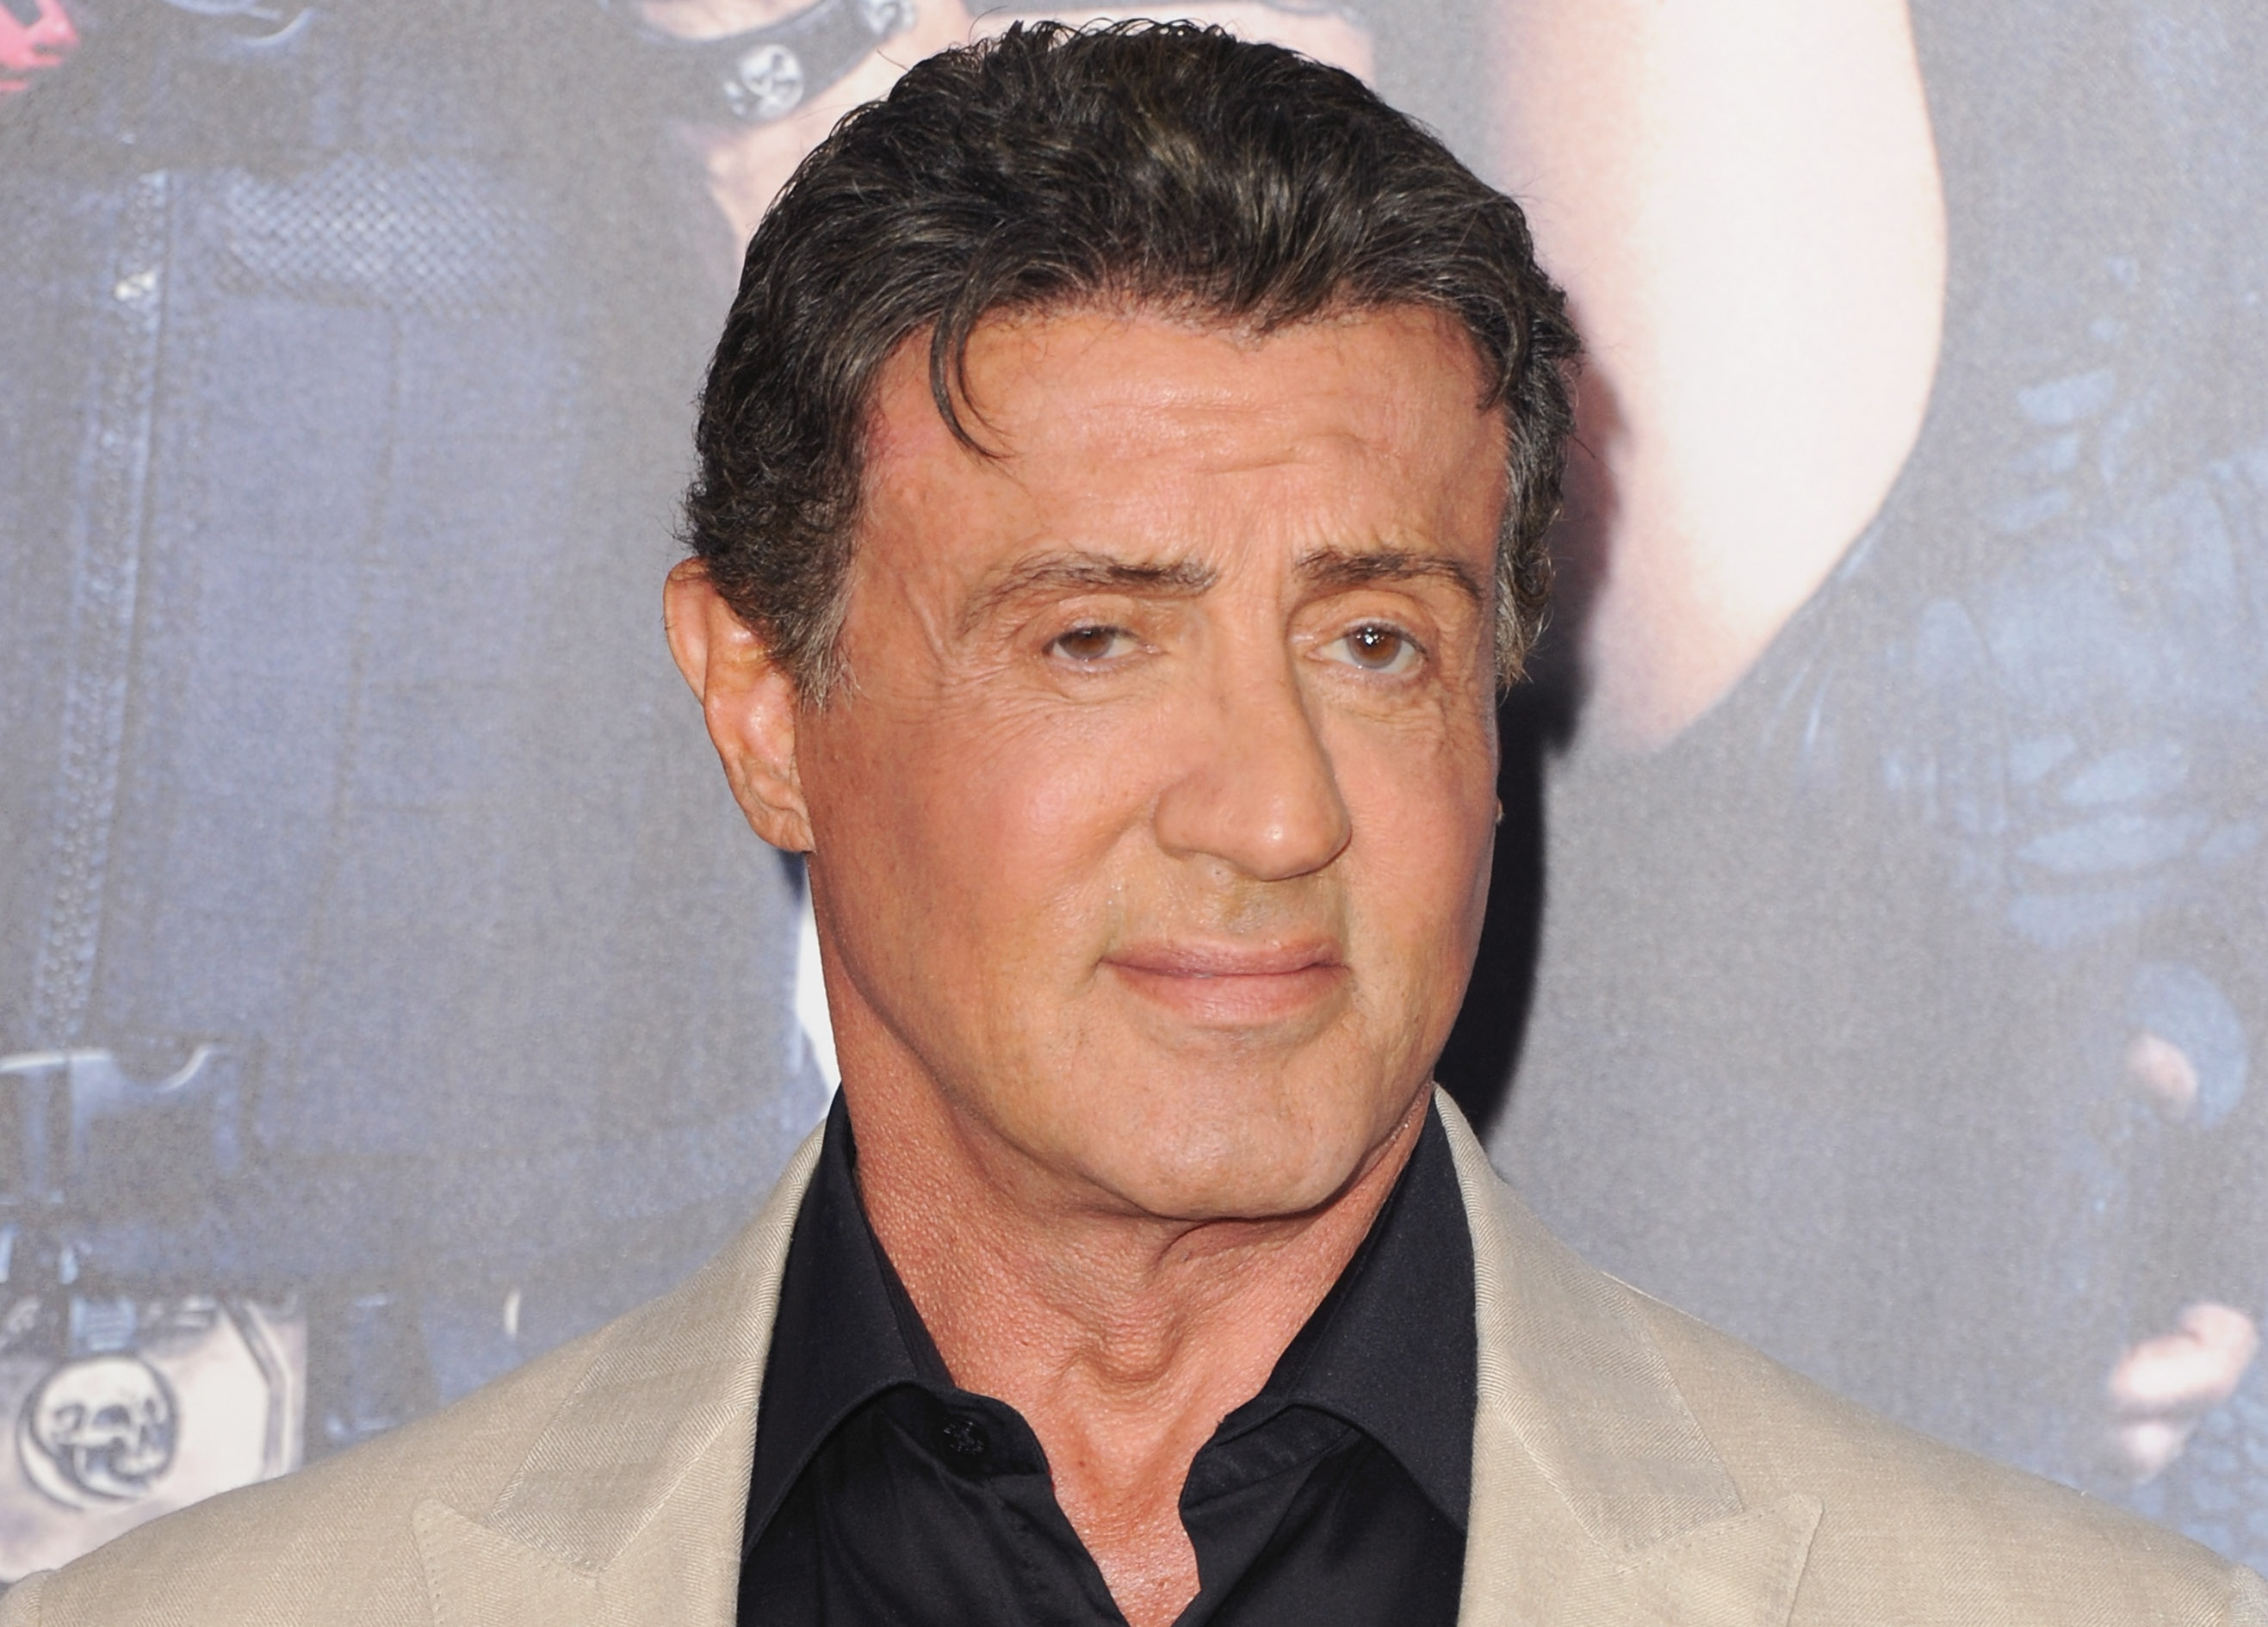 sylvester stallone Online shopping from a great selection at movies & tv store.